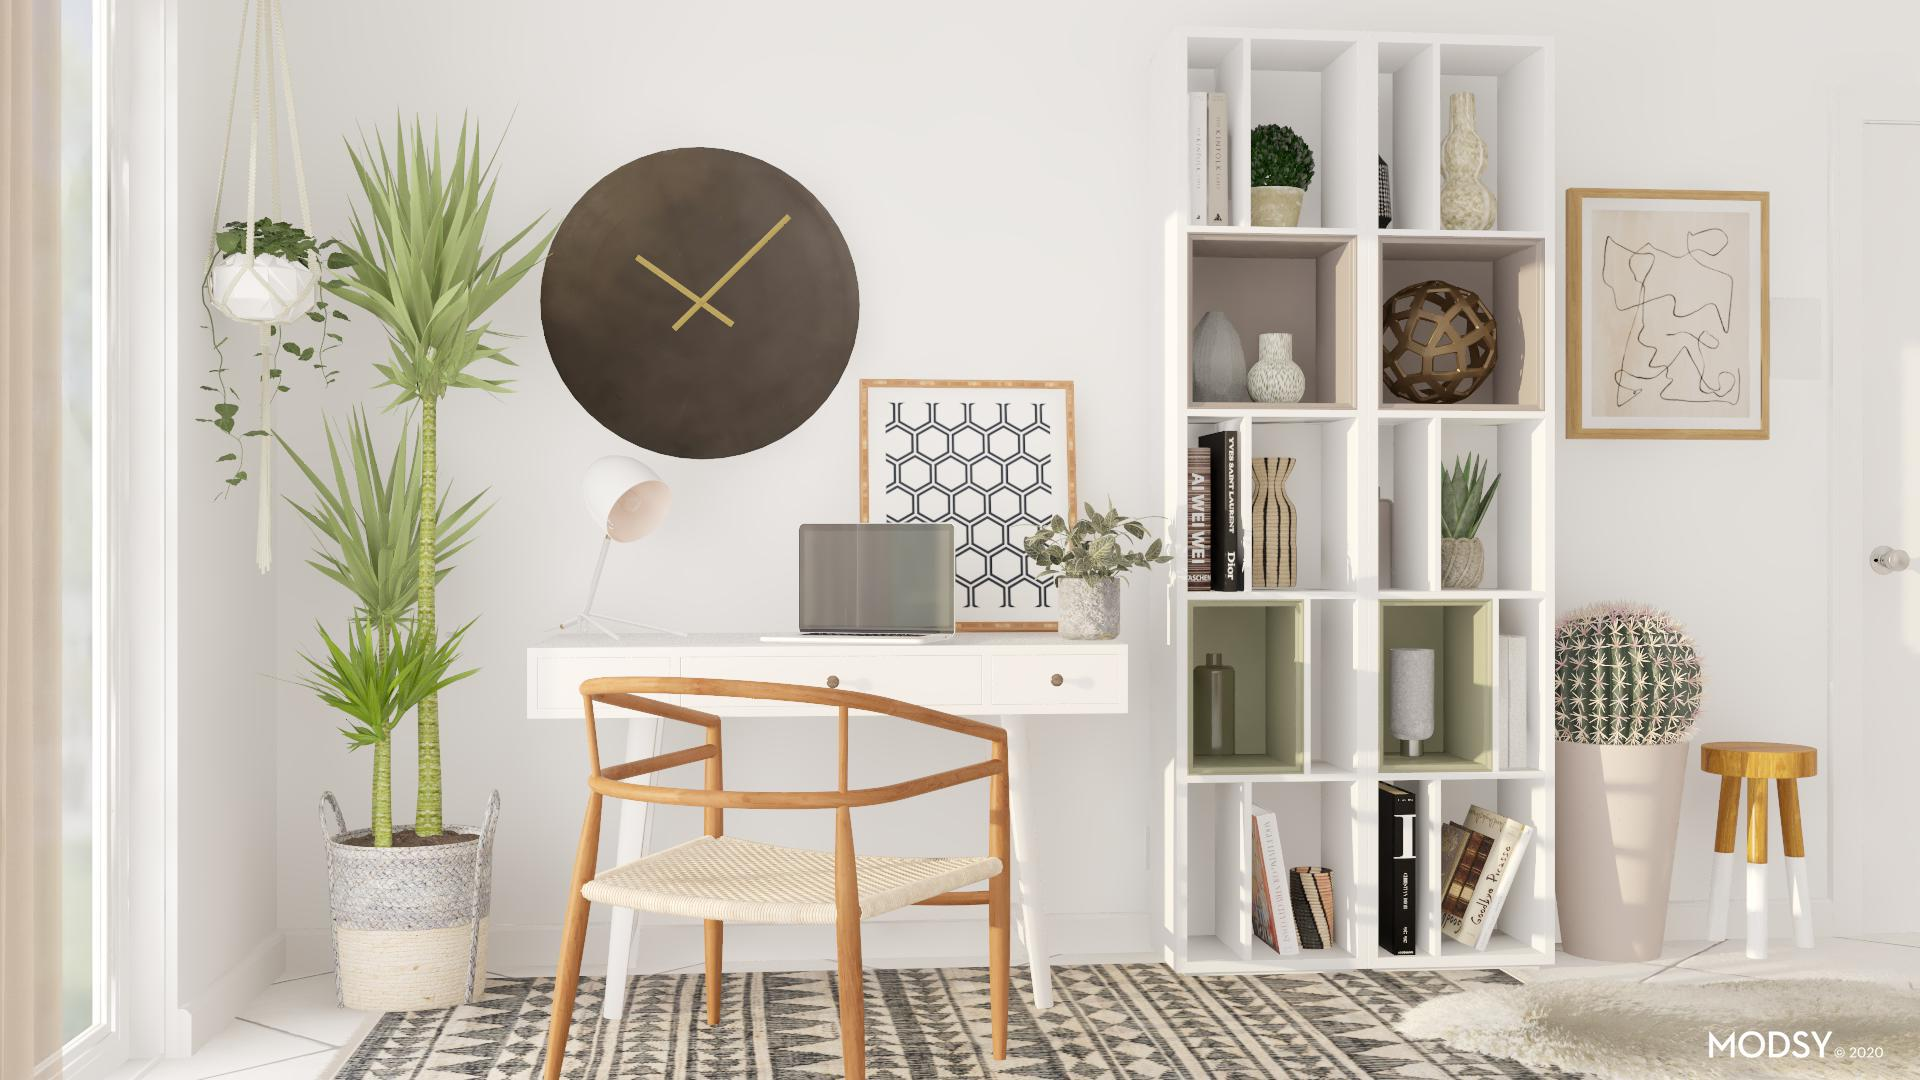 Minimalist Office Design Ideas And Styles From Modsy Designers